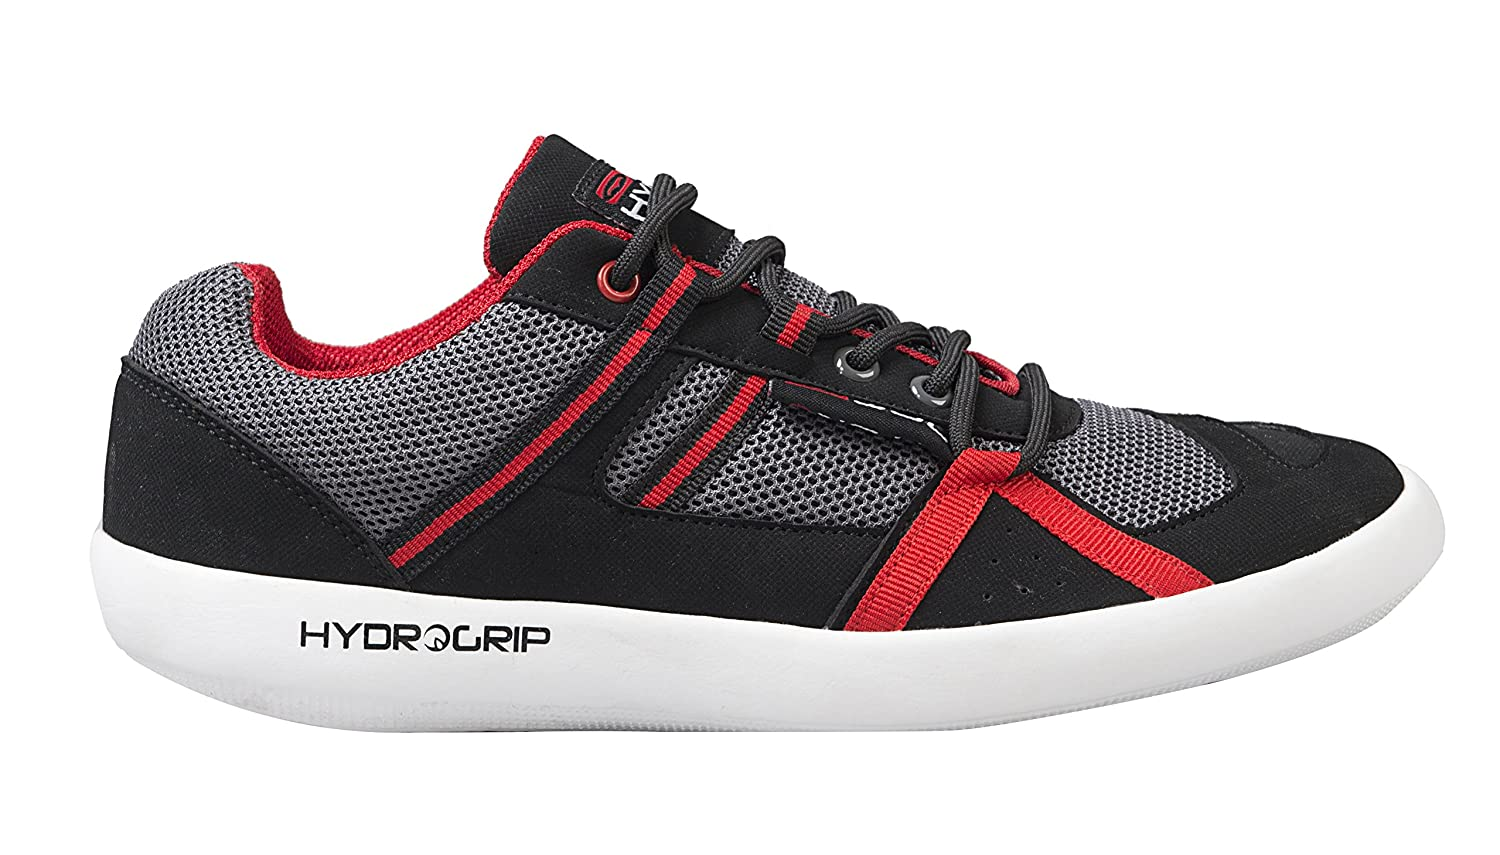 bb52bffb22cb3e Gul Hydro Aqua Grip Shoe - Black Red